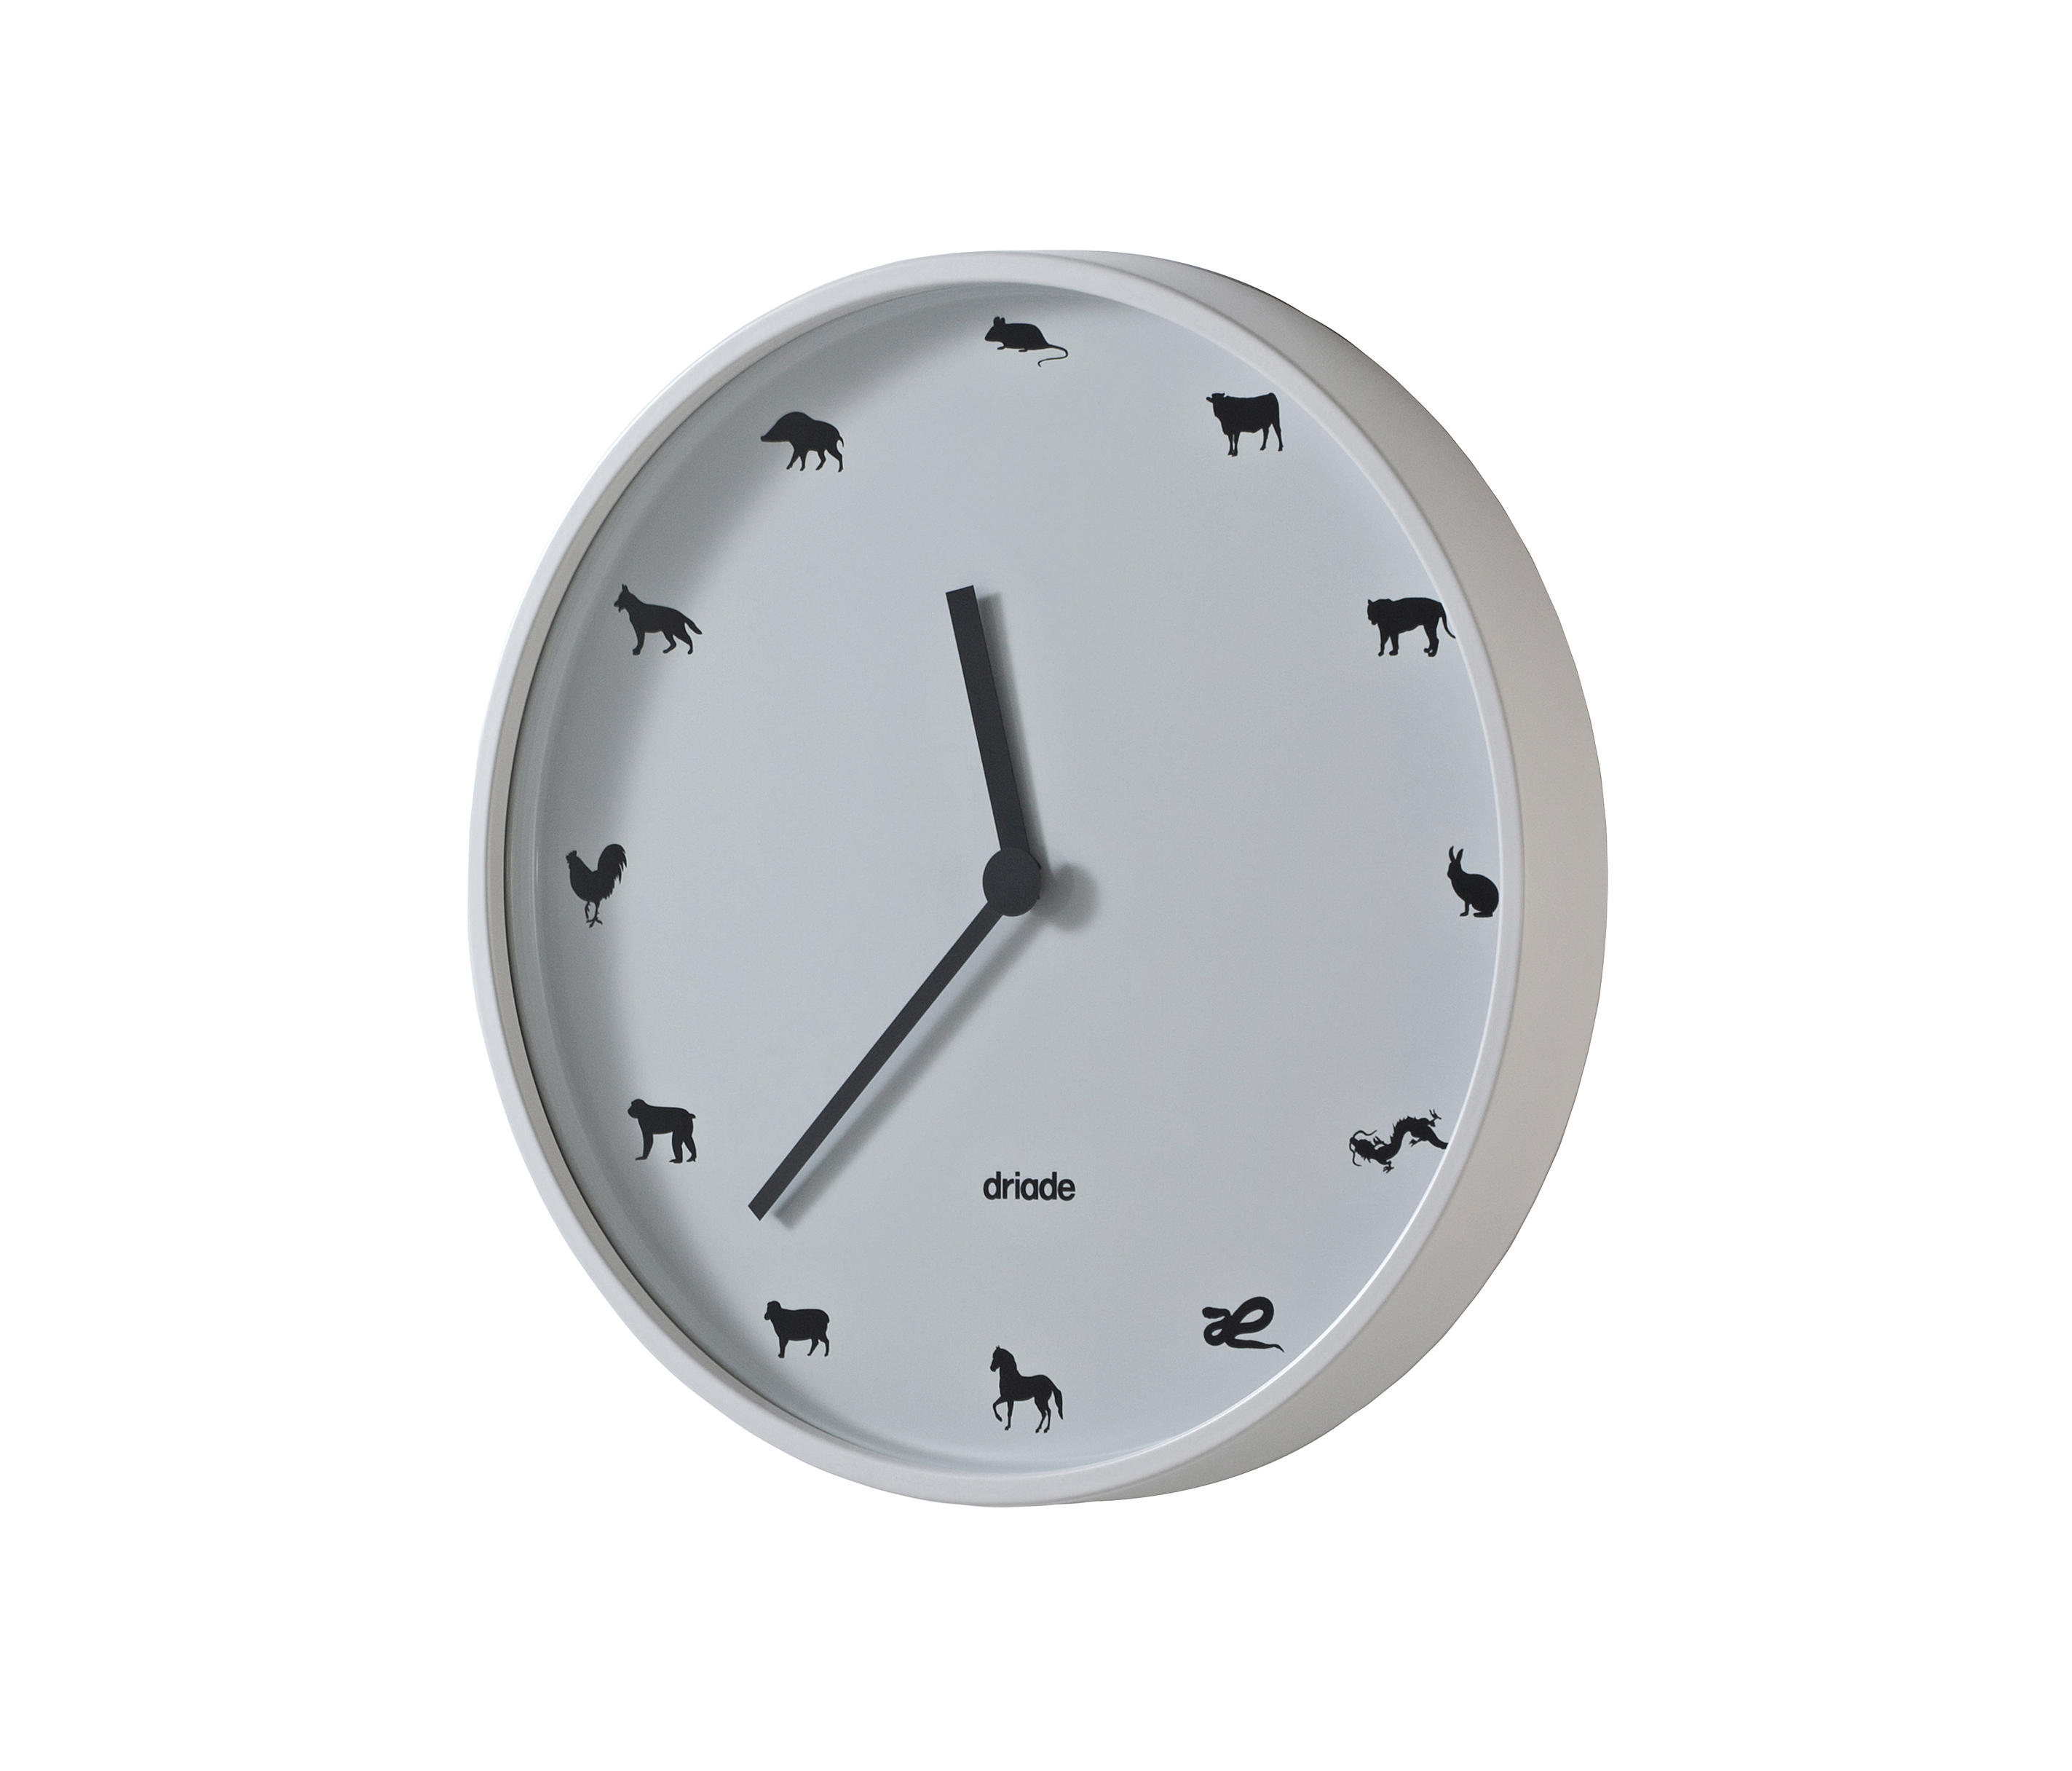 100 funky wall clocks 33 unique cuckoo clocks that go great with modern decor premier - Funky cuckoo clock ...